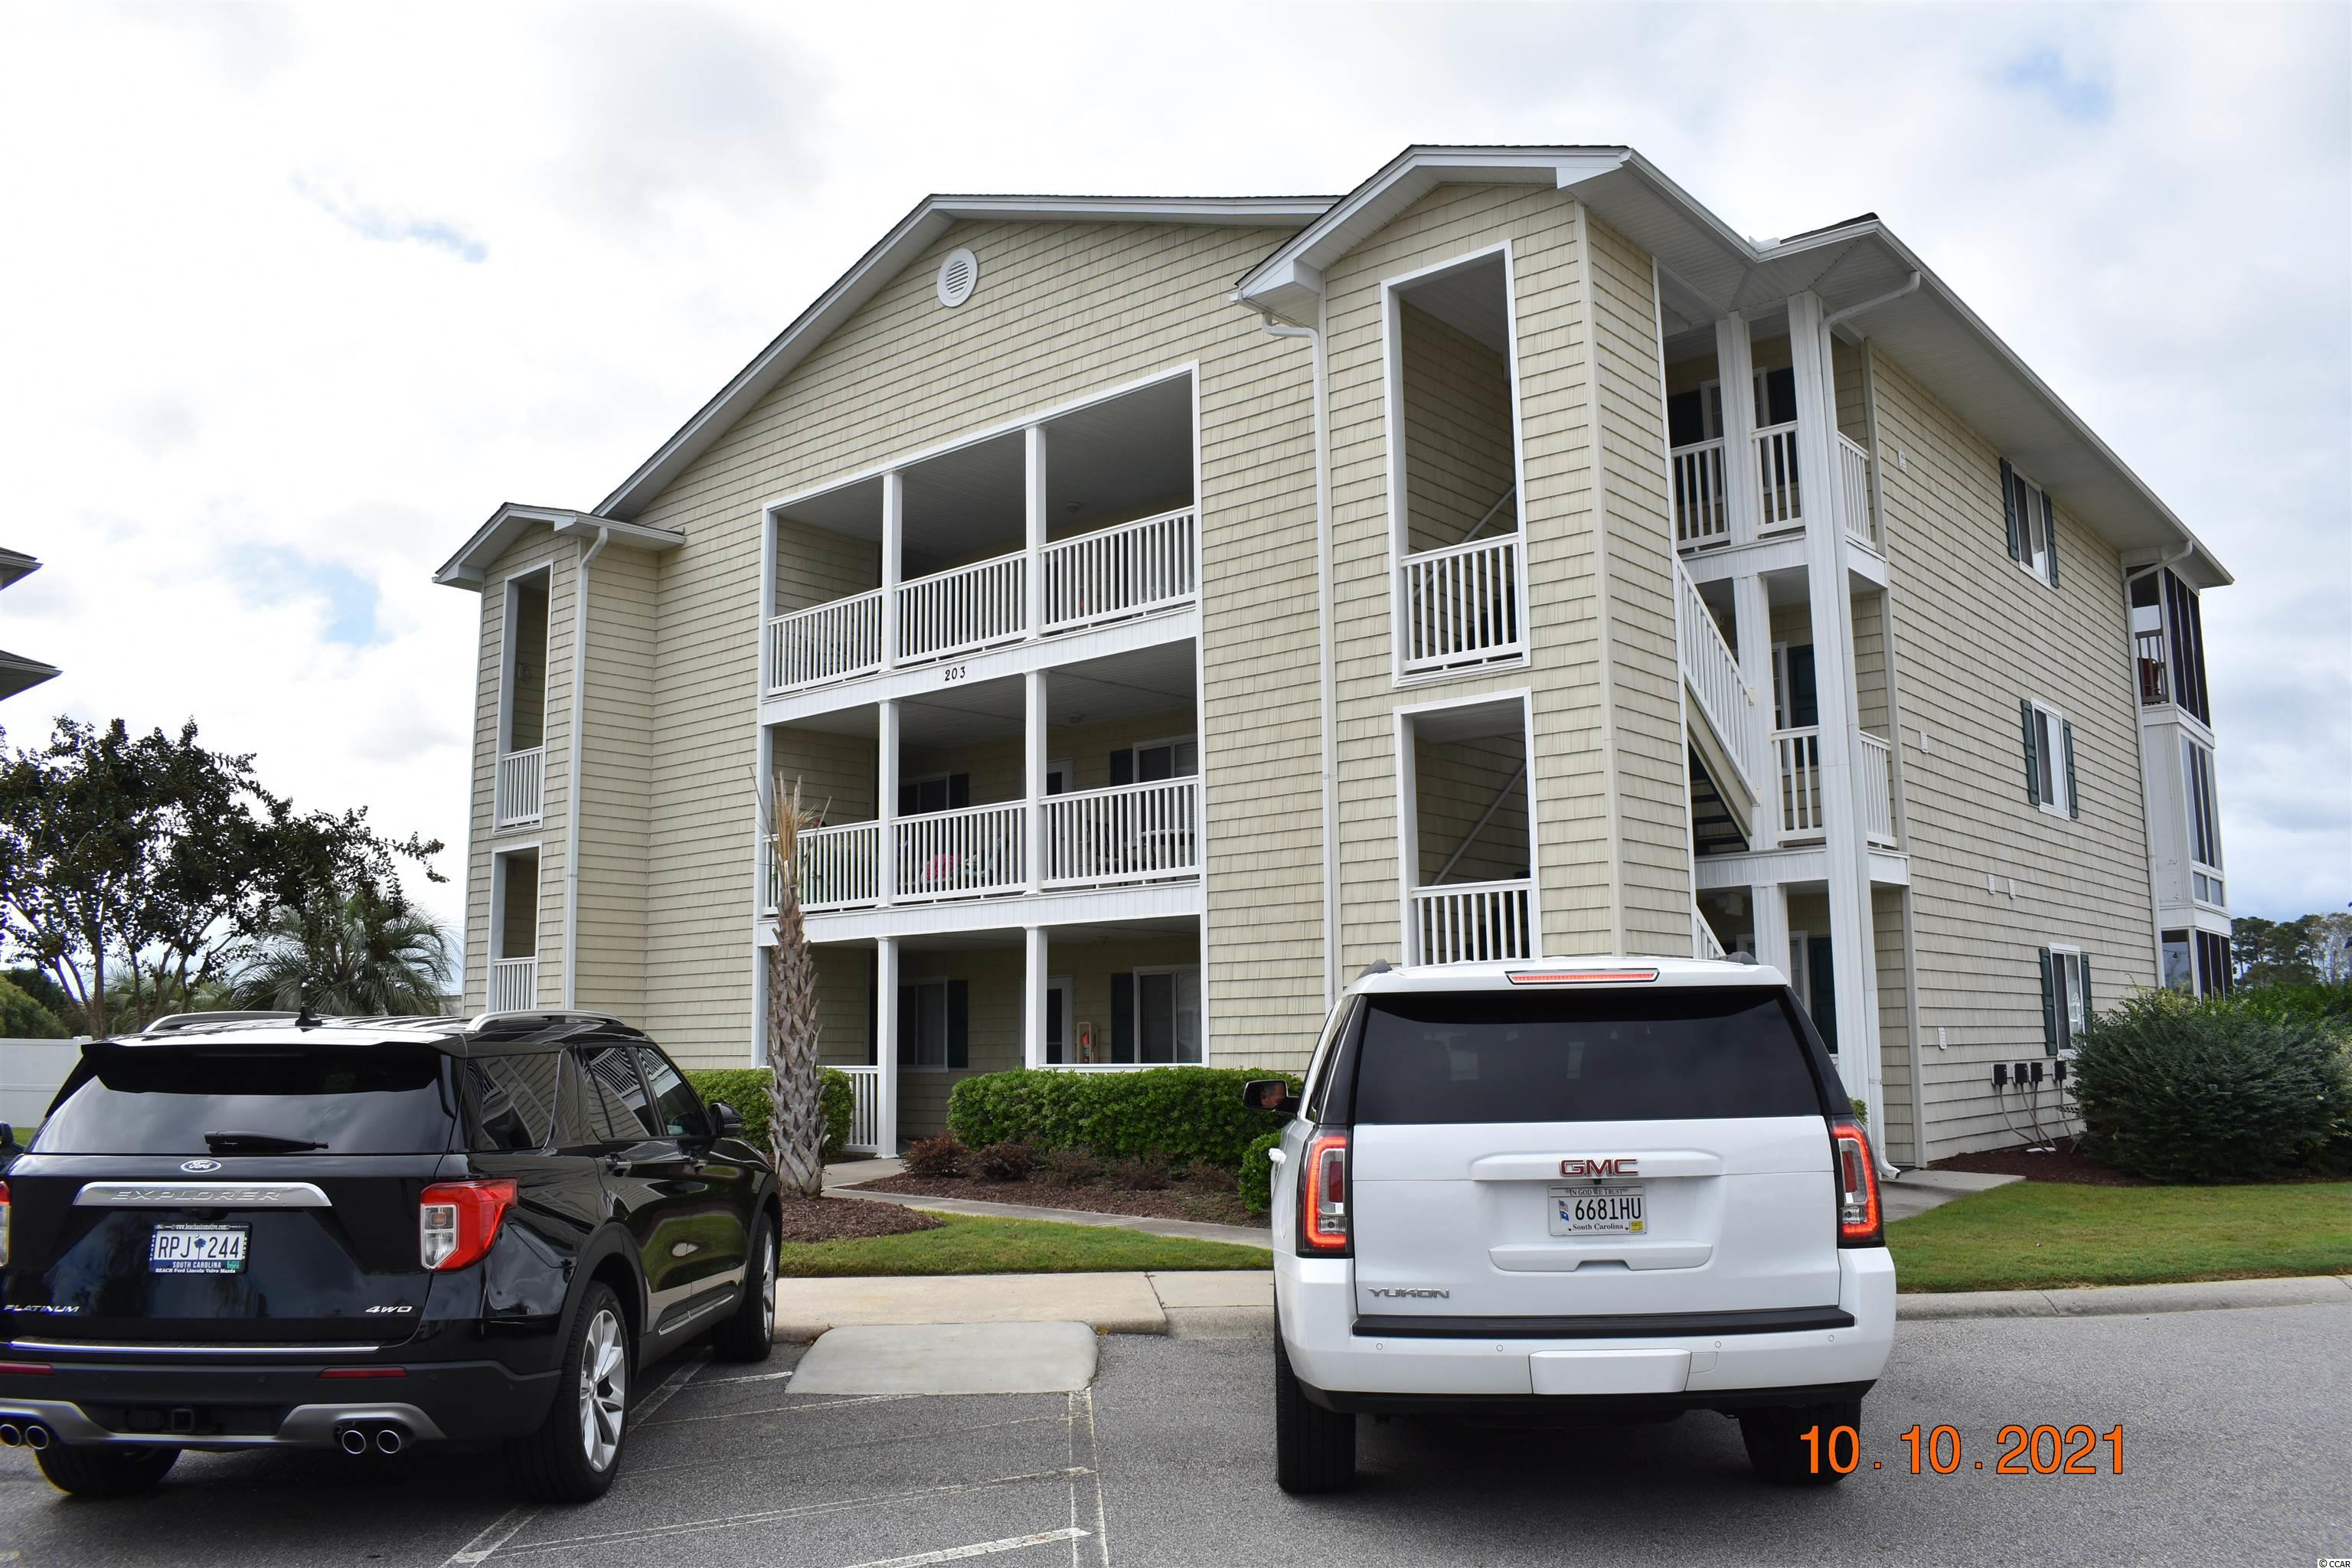 First floor end unit in established gated-community.  Lots of natural light, privacy, and peaceful views.  This two bedroom, two bathroom condo has never been rented.  Beautiful screened in porch.  Includes owners closet and access to docks on the waterway for fishing or relaxing.  Golf carts are not allowed. Beautiful complex with a large community pool.